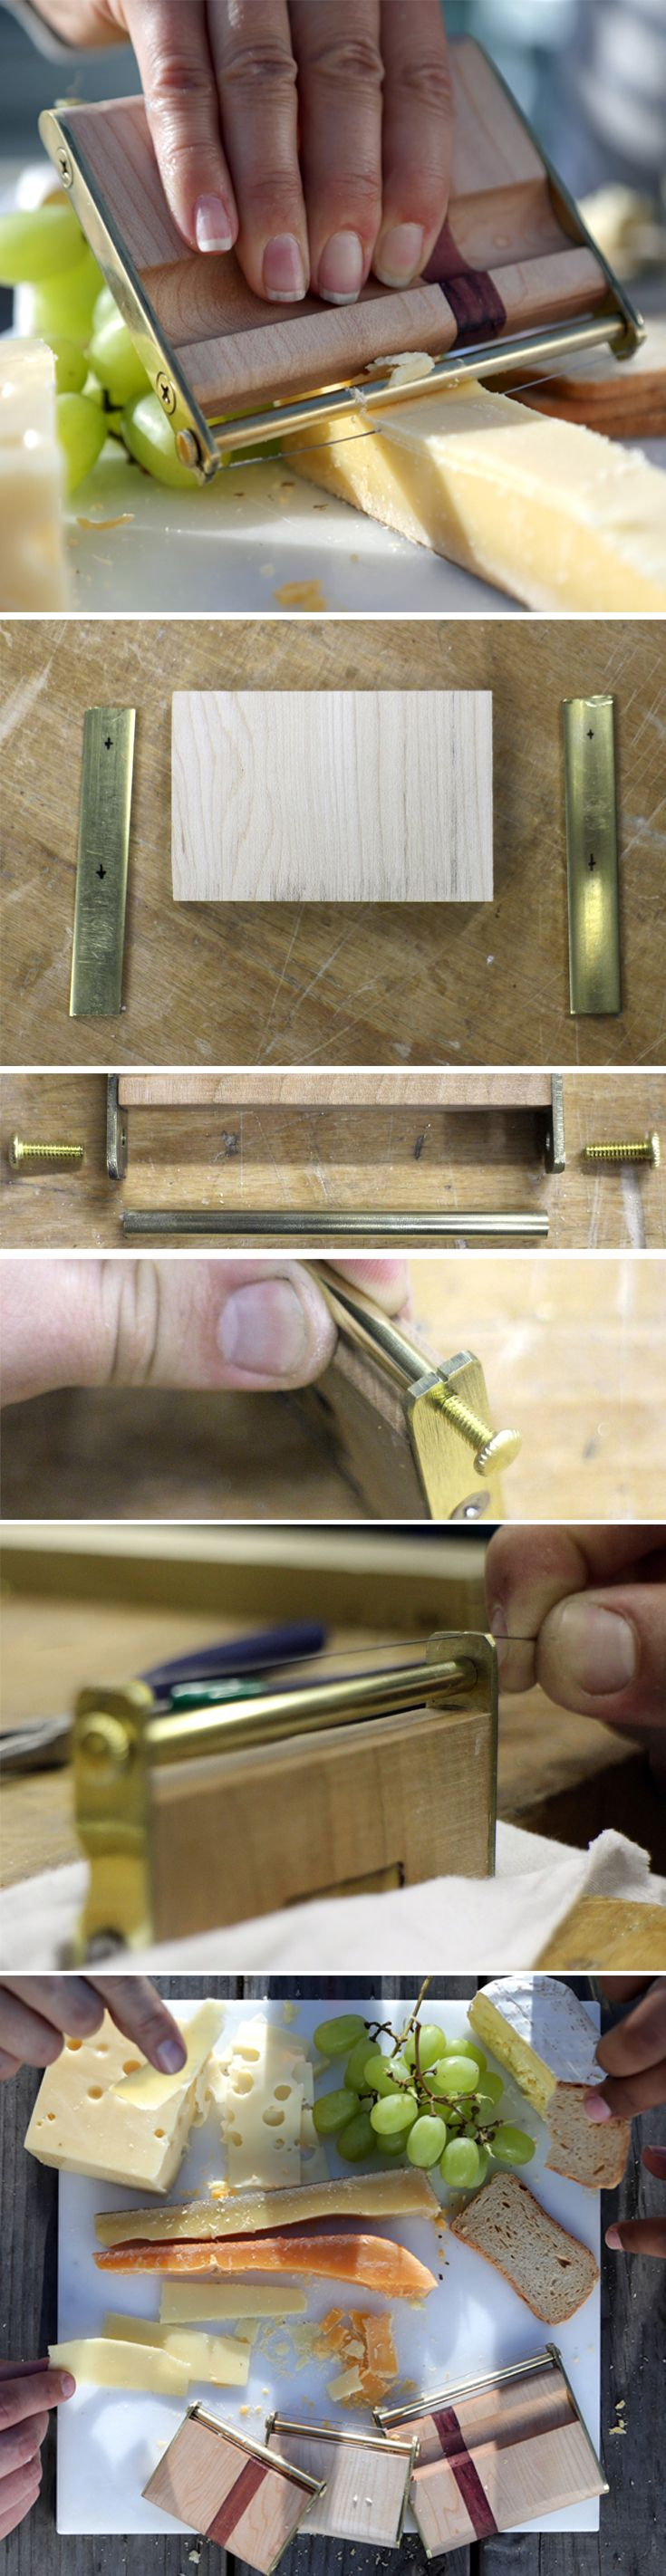 best aa images on pinterest woodworking carpentry and wood